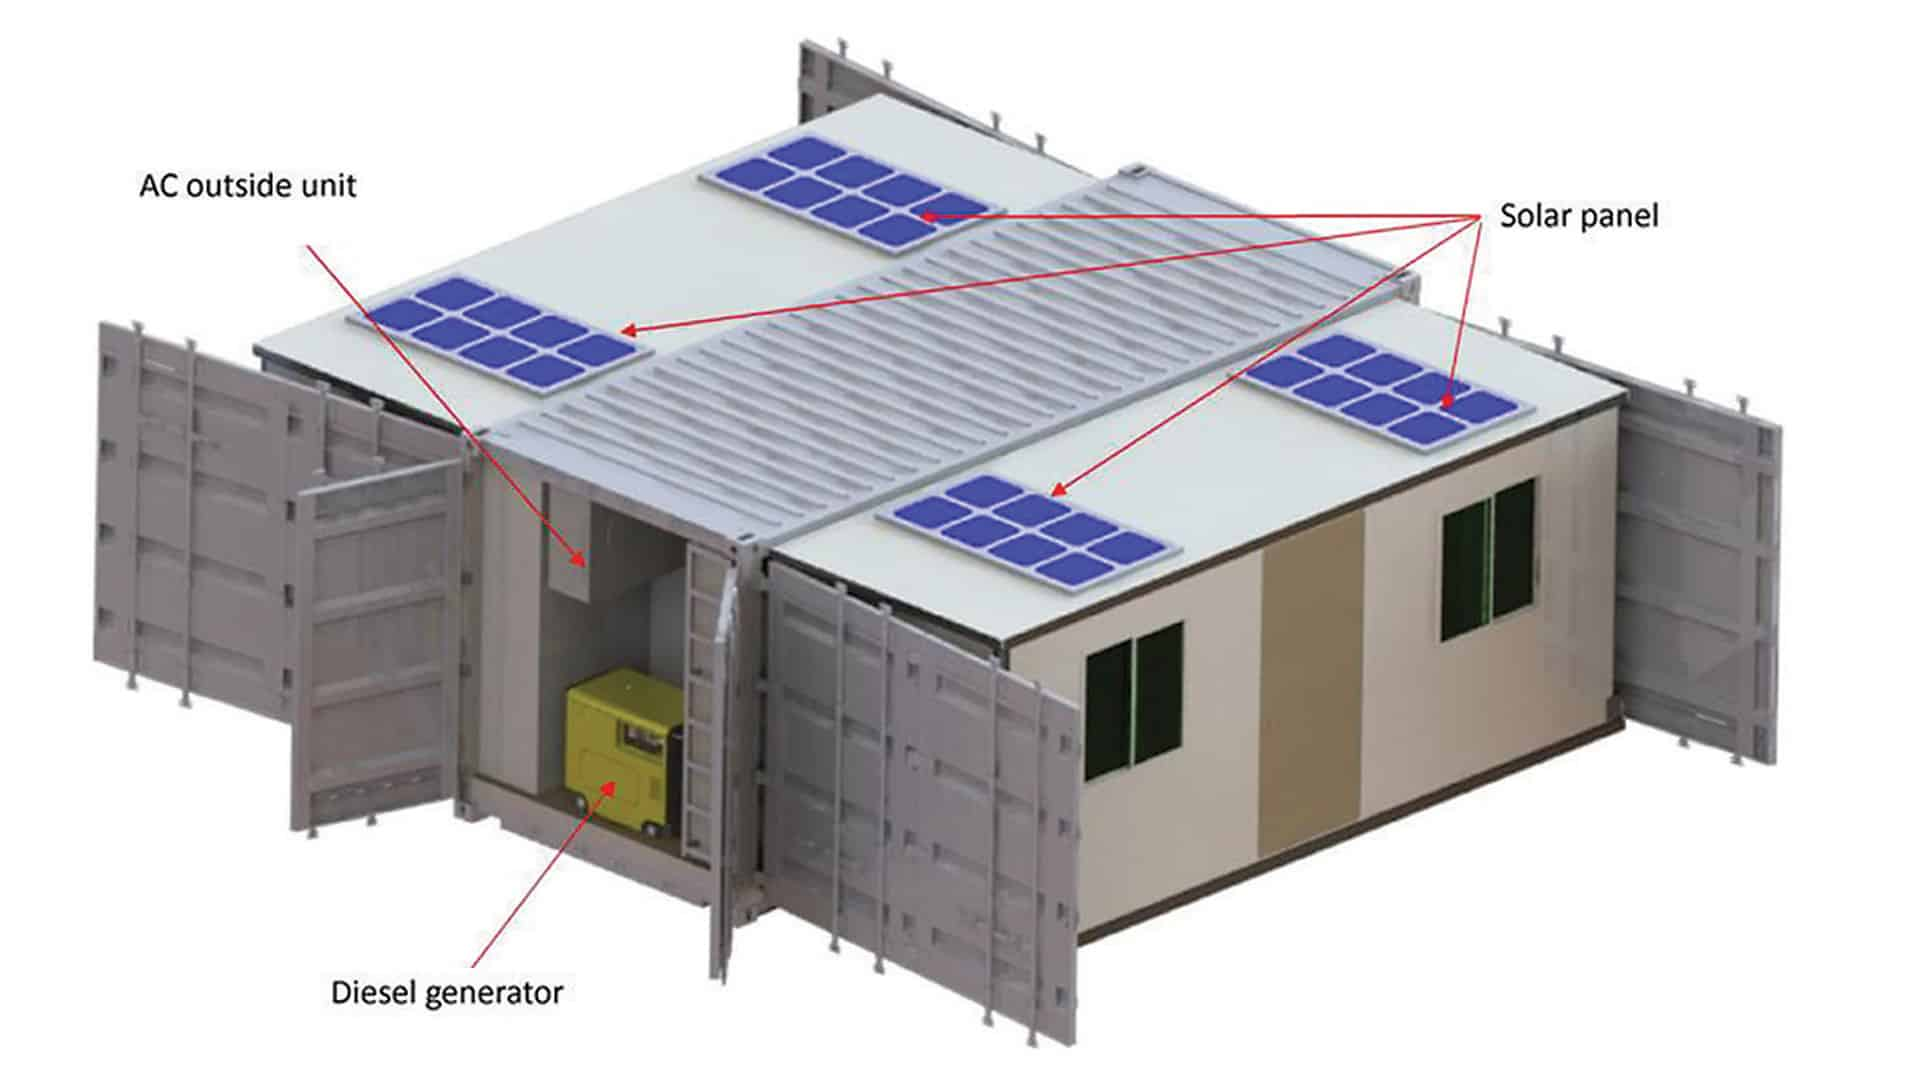 open: Solar panels External air conditioning unit Diesel generator #3C448F